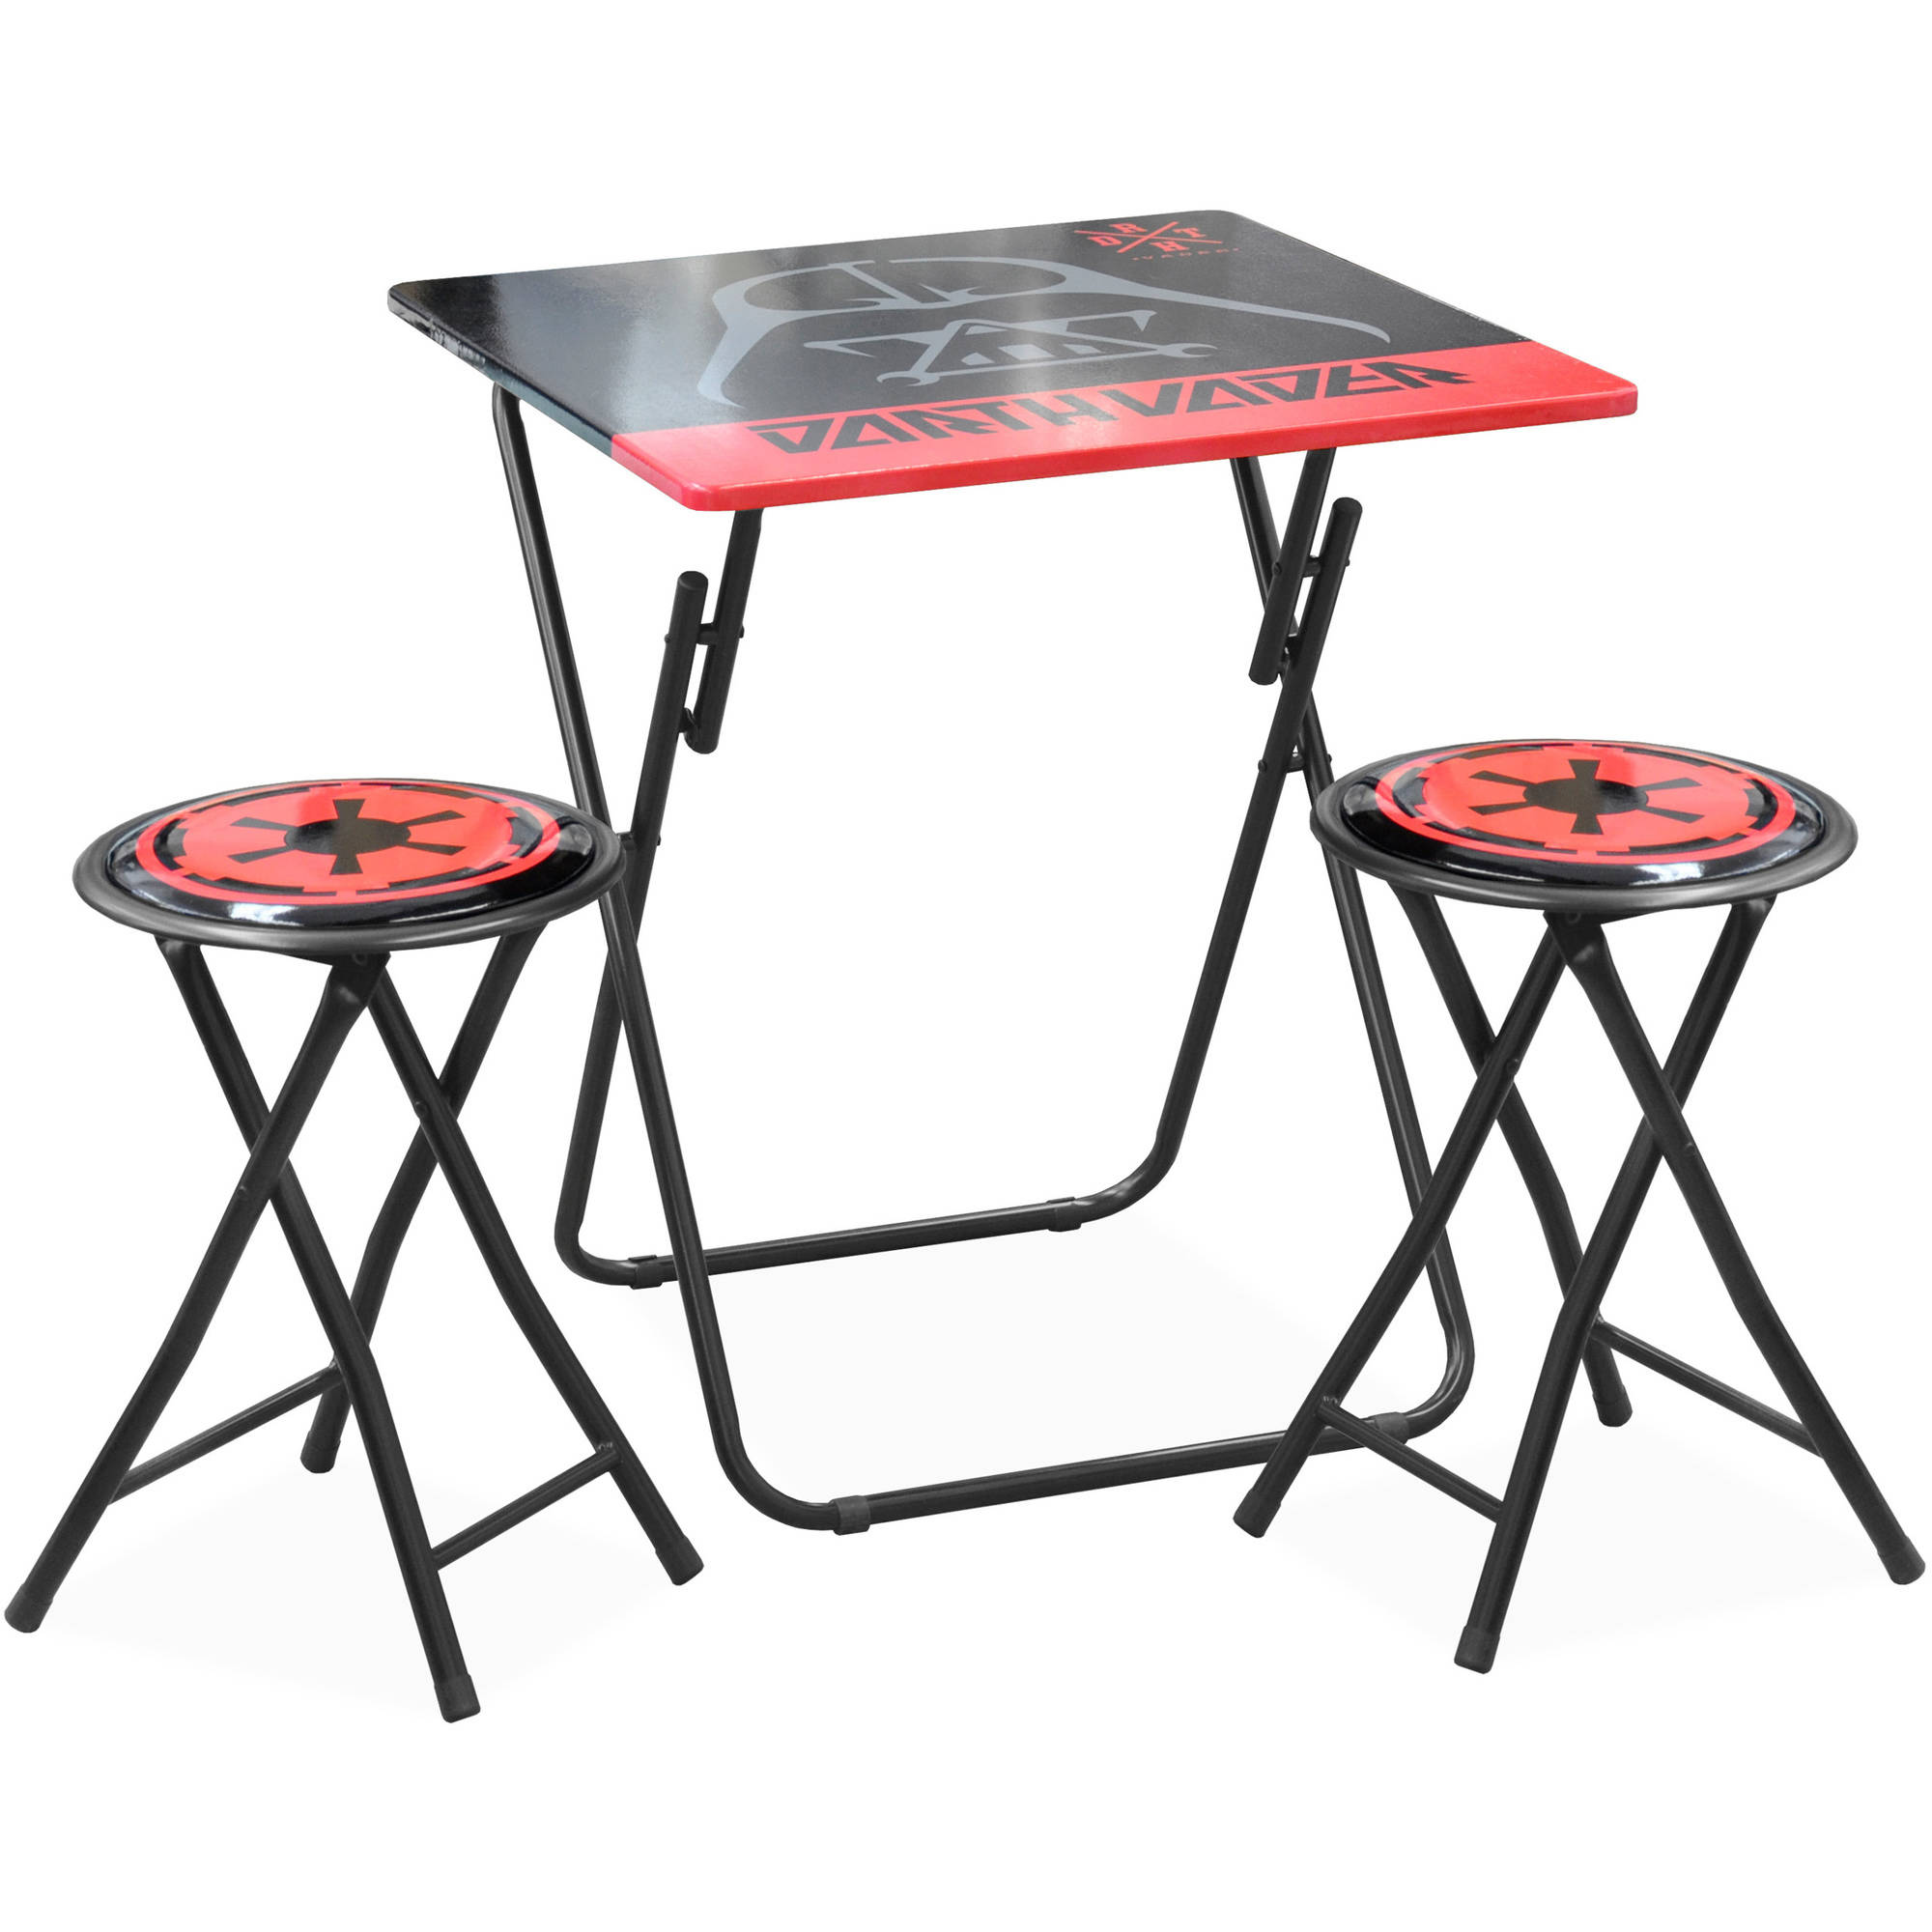 folding table and chair set tent rentals star wars movie darth vader desk walmart com